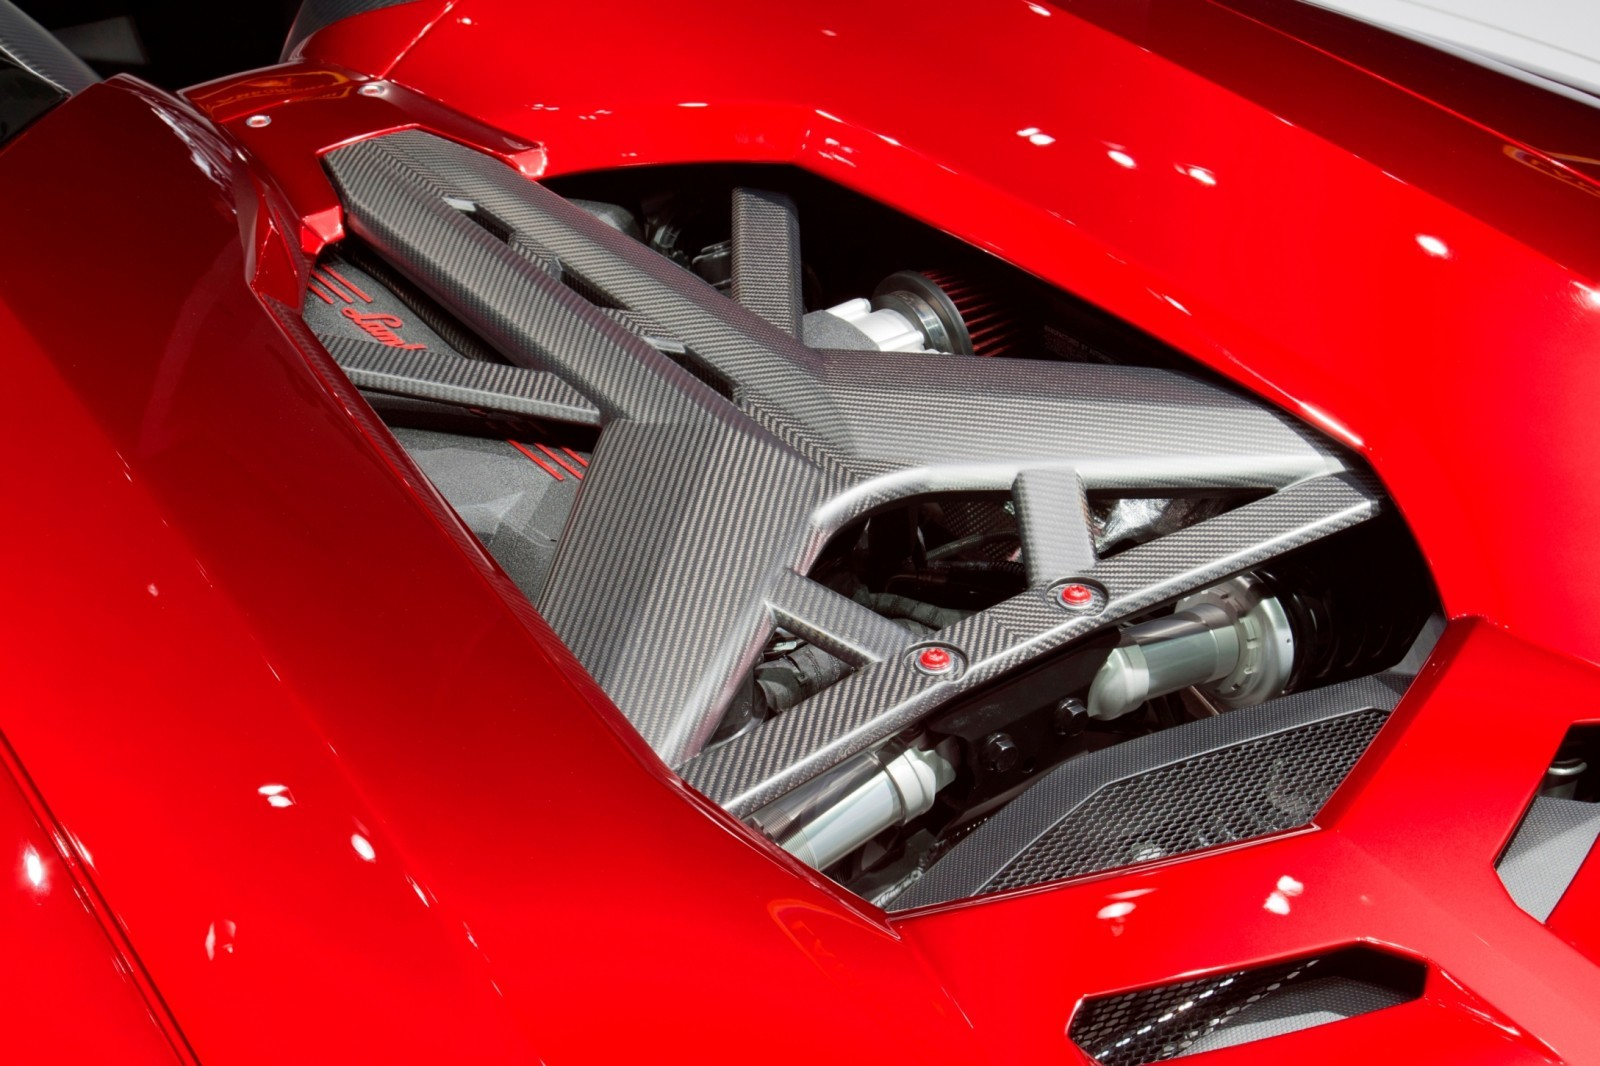 Hypercar Showcase - 2014 Lamborghini Aventador Trumped Only By Aventador J and Aventador Roadster 27